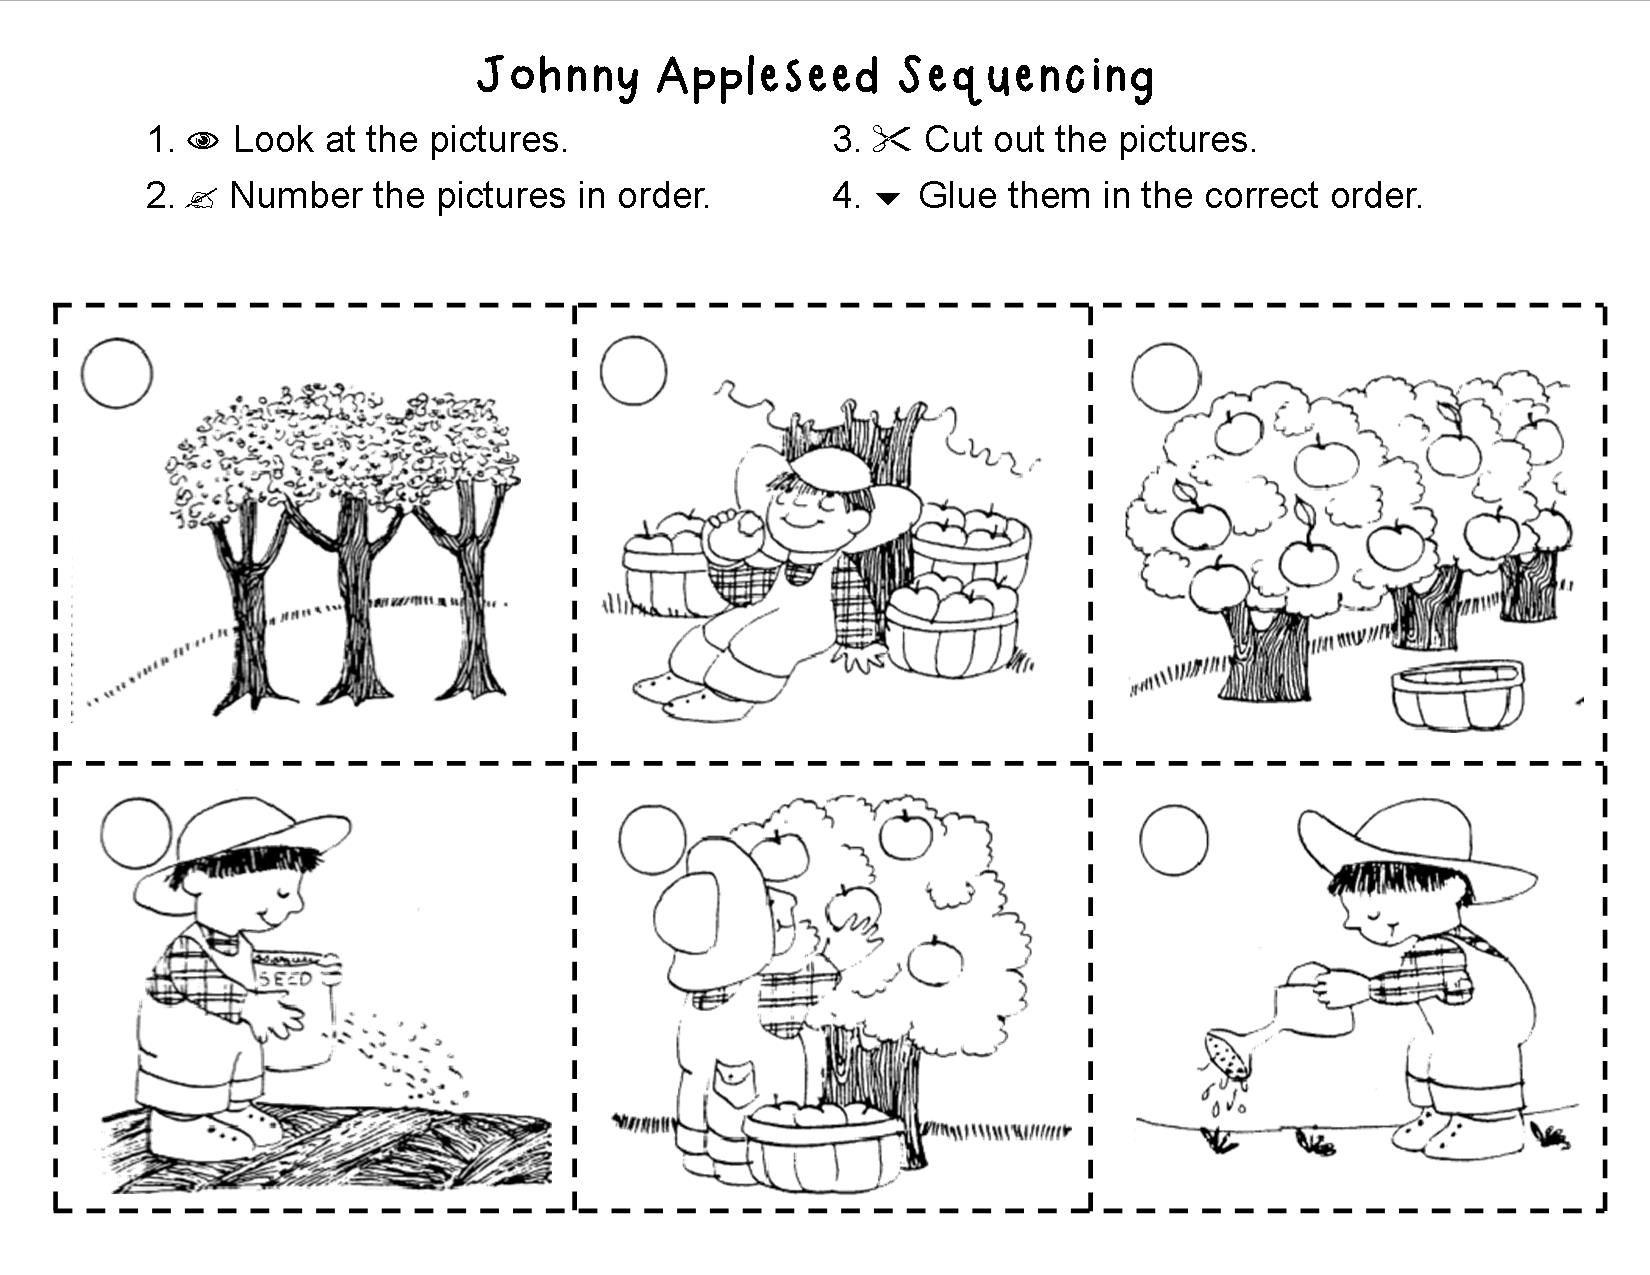 Johnny Appleseed Sequencing made for 1st grade september